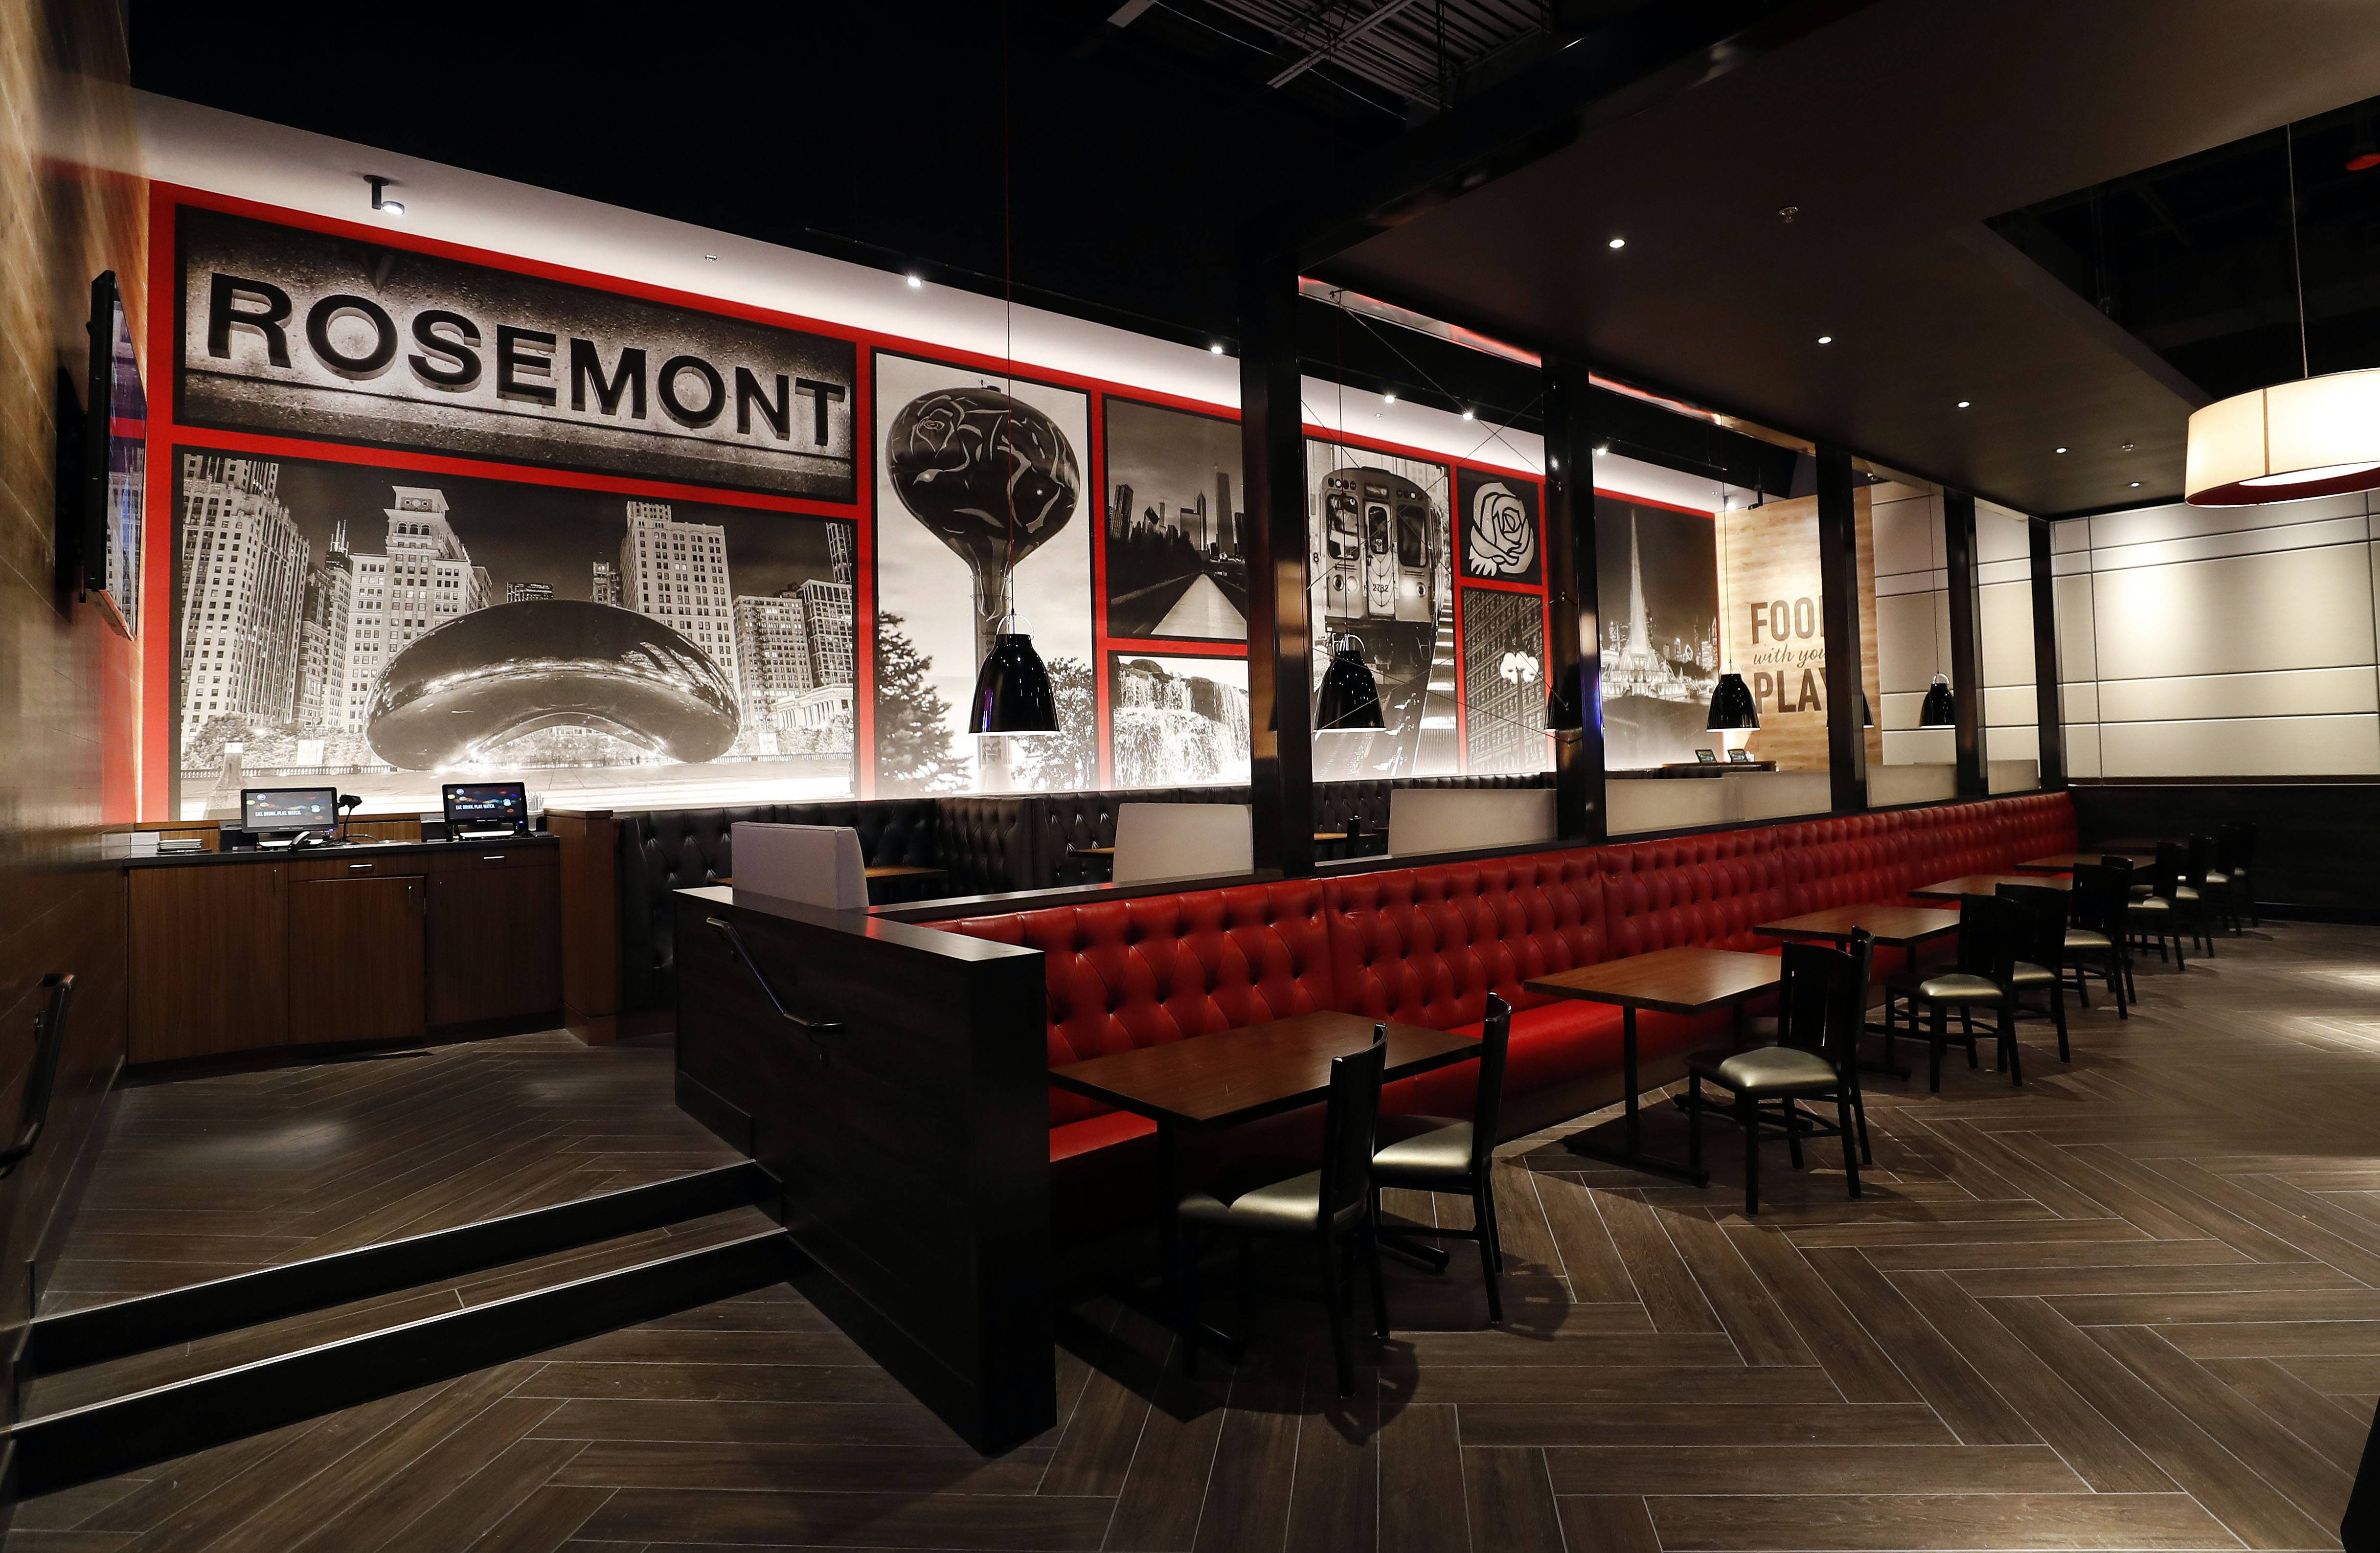 The dining room at the new Dave & Buster's location in Rosemont features murals of Rosemont and Chicago scenery.